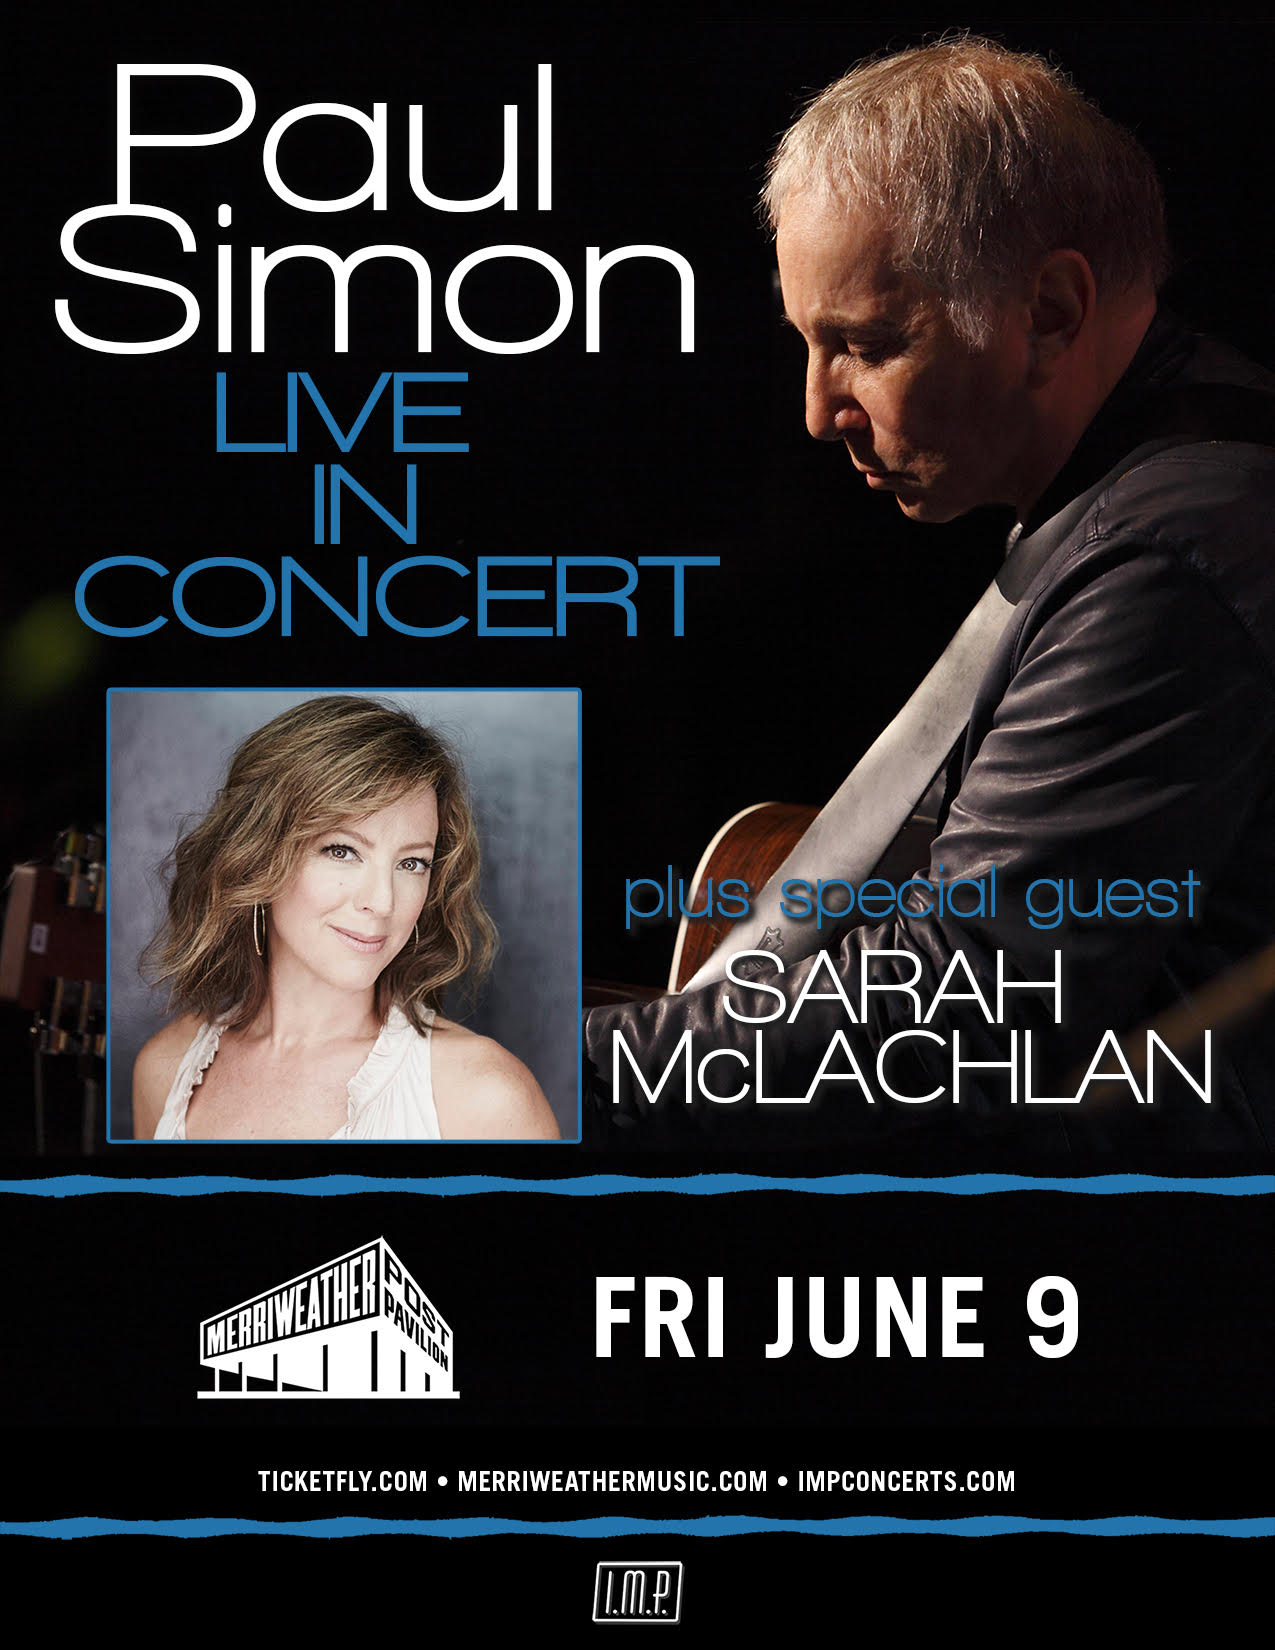 Paul Simon and Sarah McLachlan